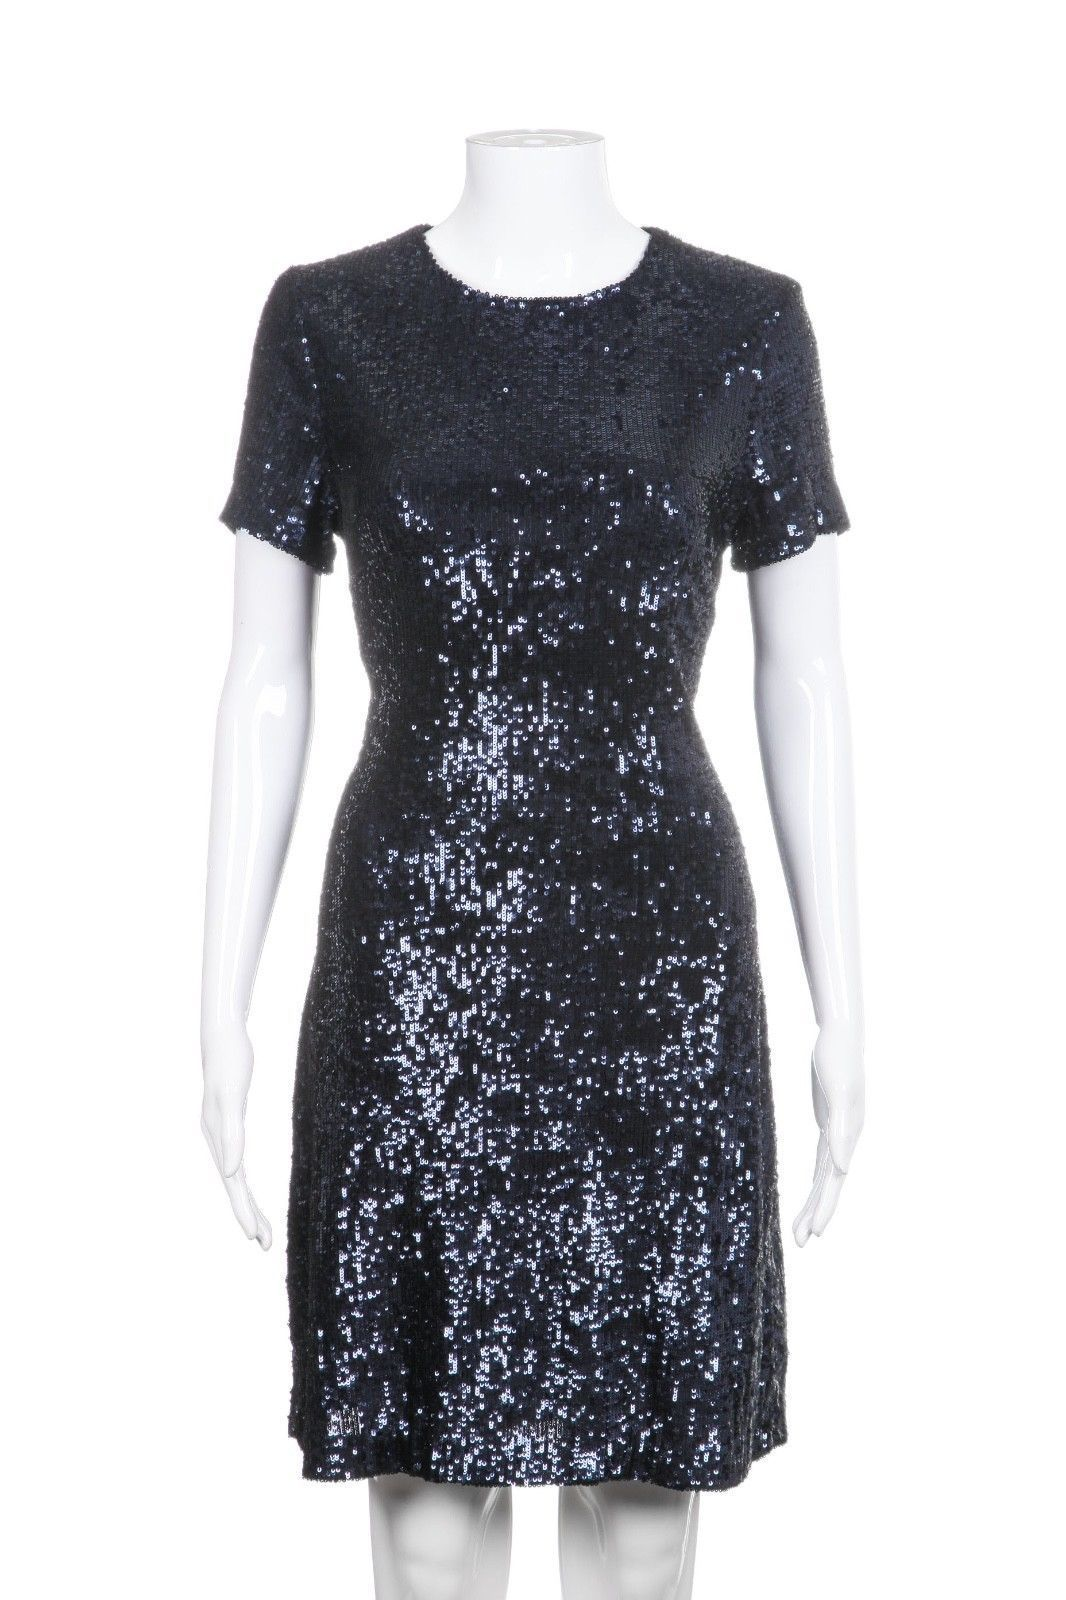 45210a6c7ecc TORY BURCH Blue Sequin Short Sleeve Cocktail Dress Size M in 2019 ...